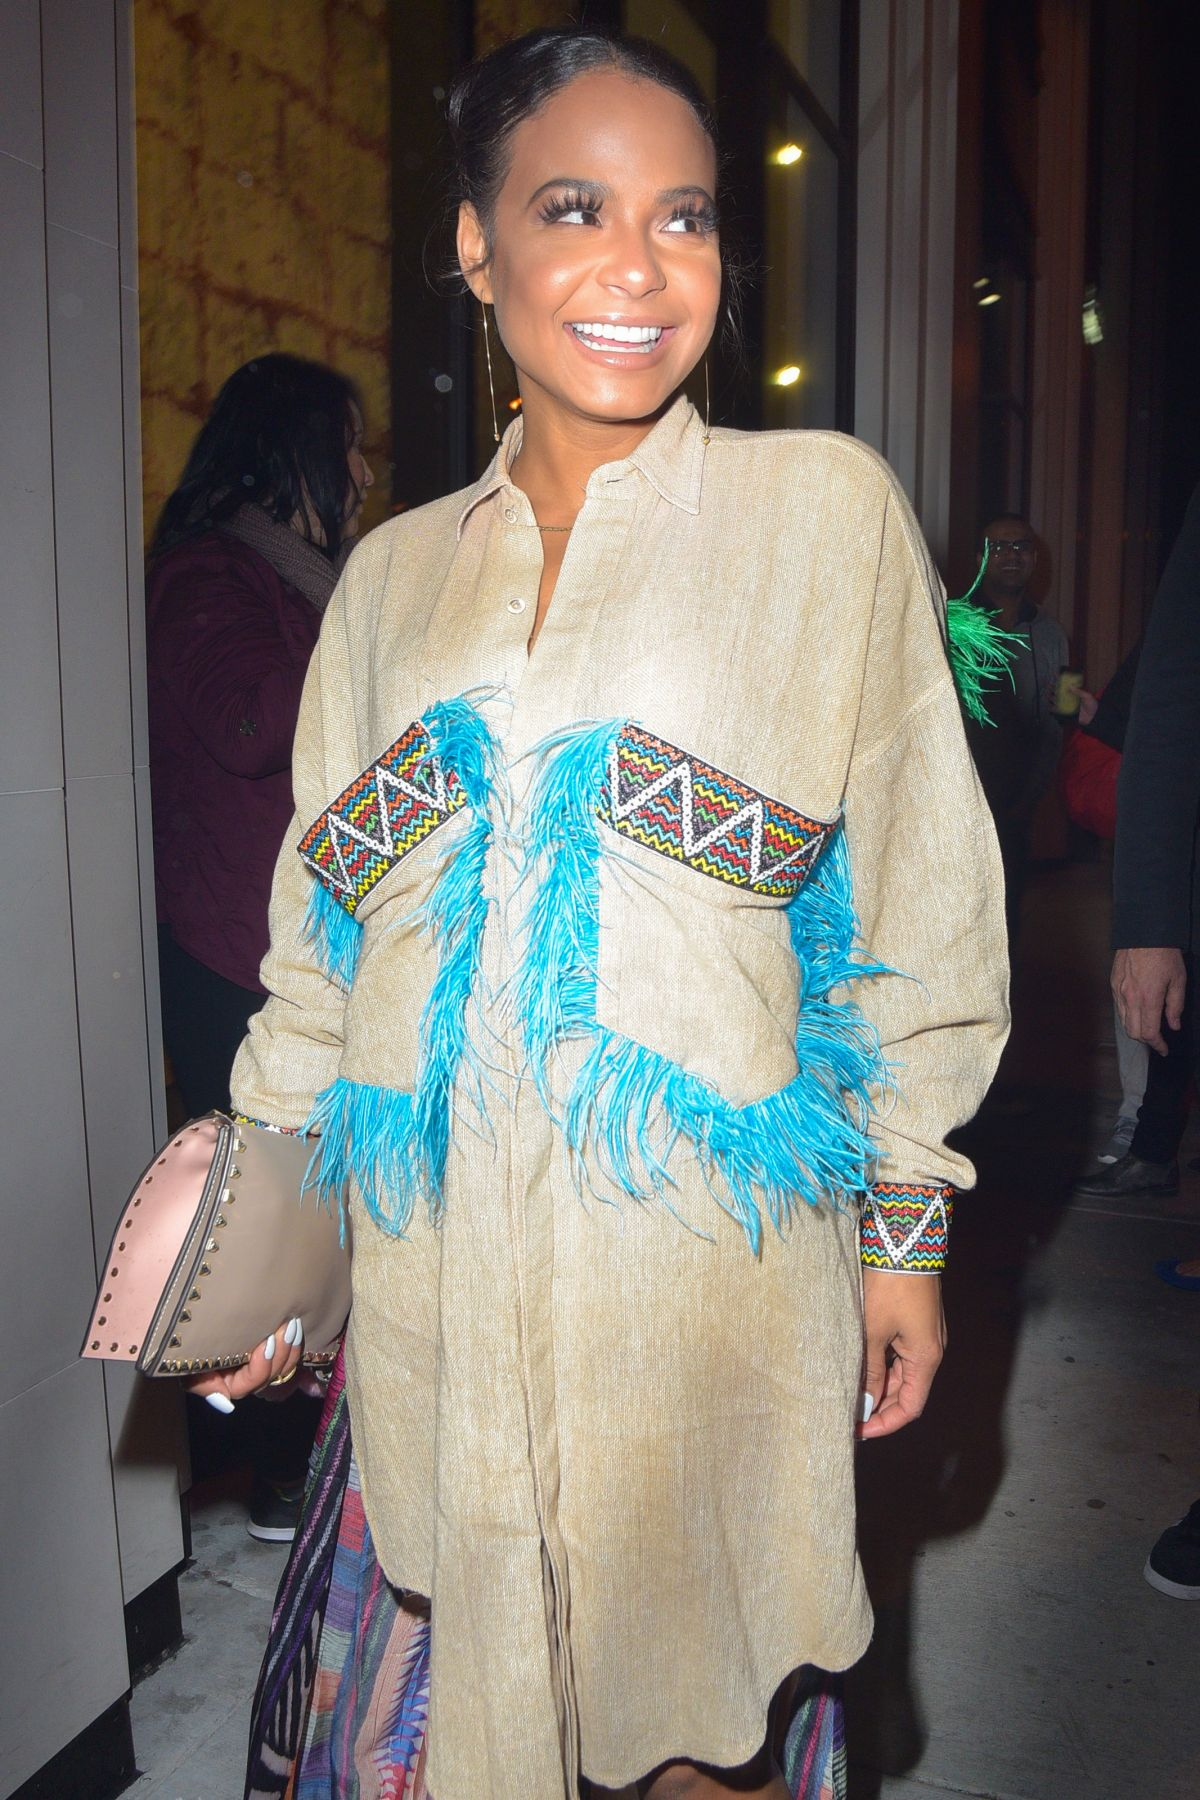 CHRISTINA MILIAN at Catch LA in West Hollywood 01/26/2017